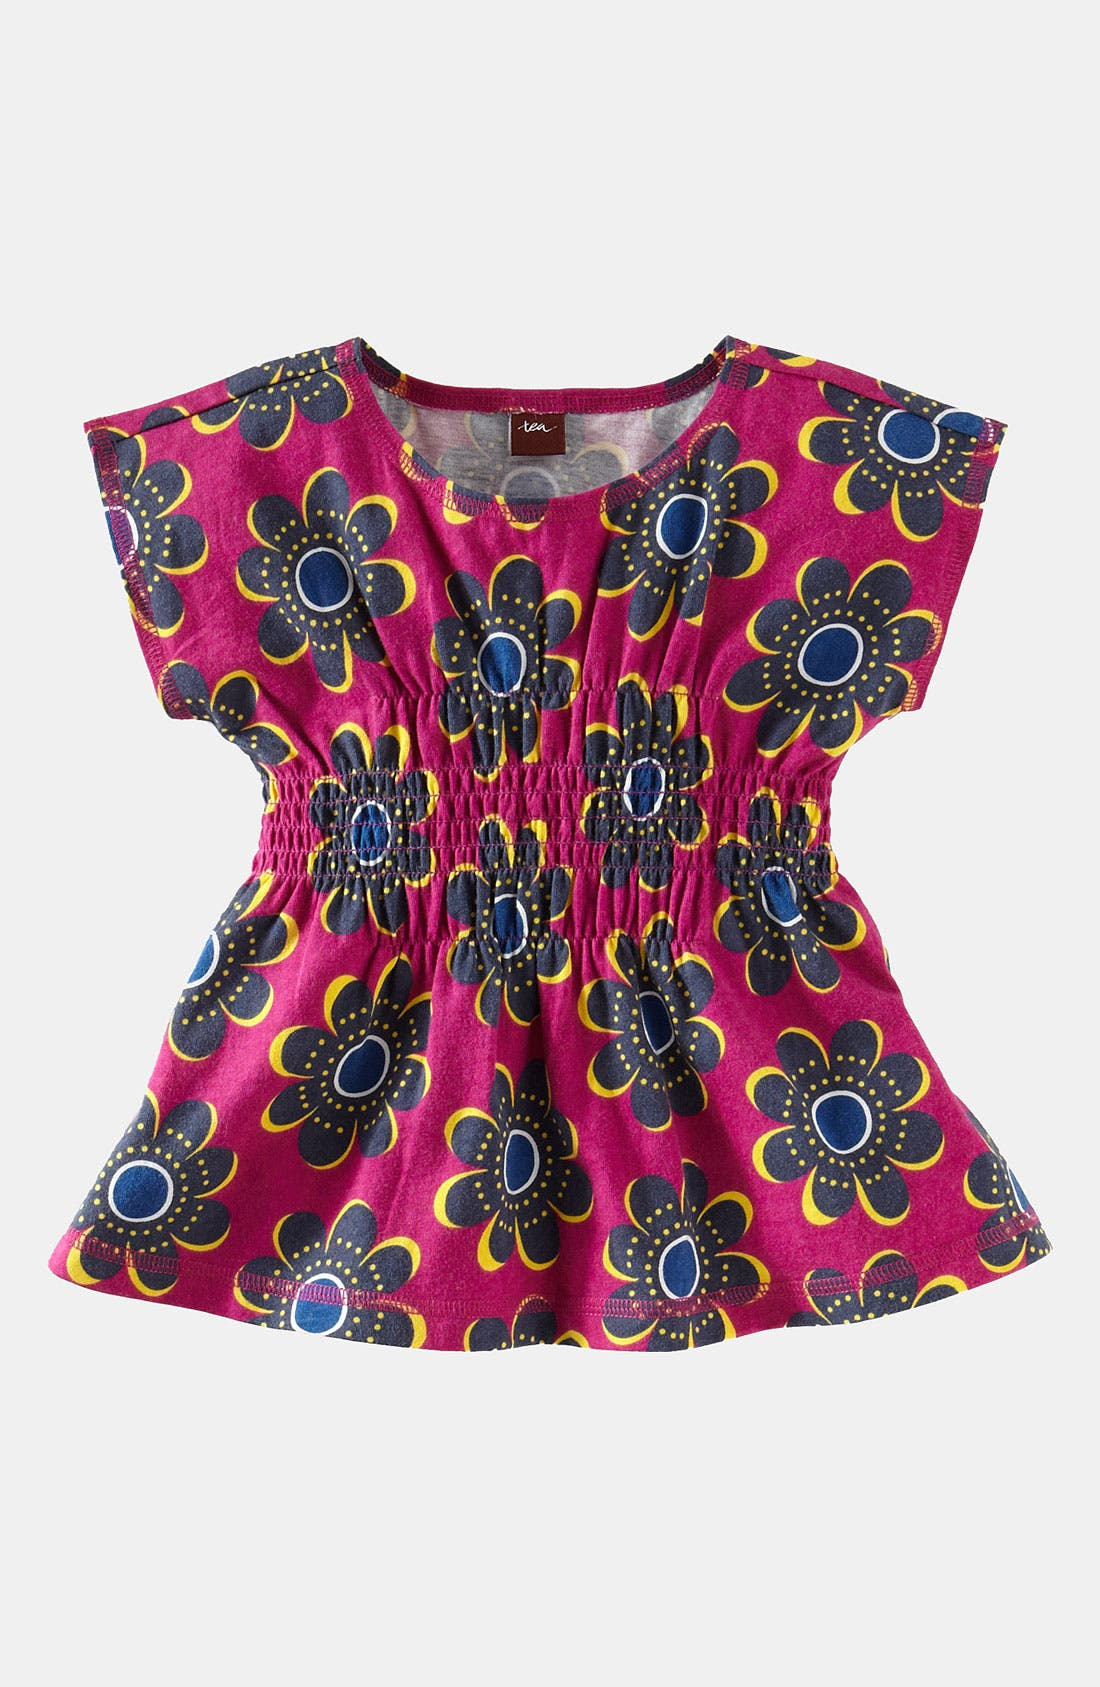 Main Image - Tea Collection 'Rosebank' Smocked Top (Toddler)